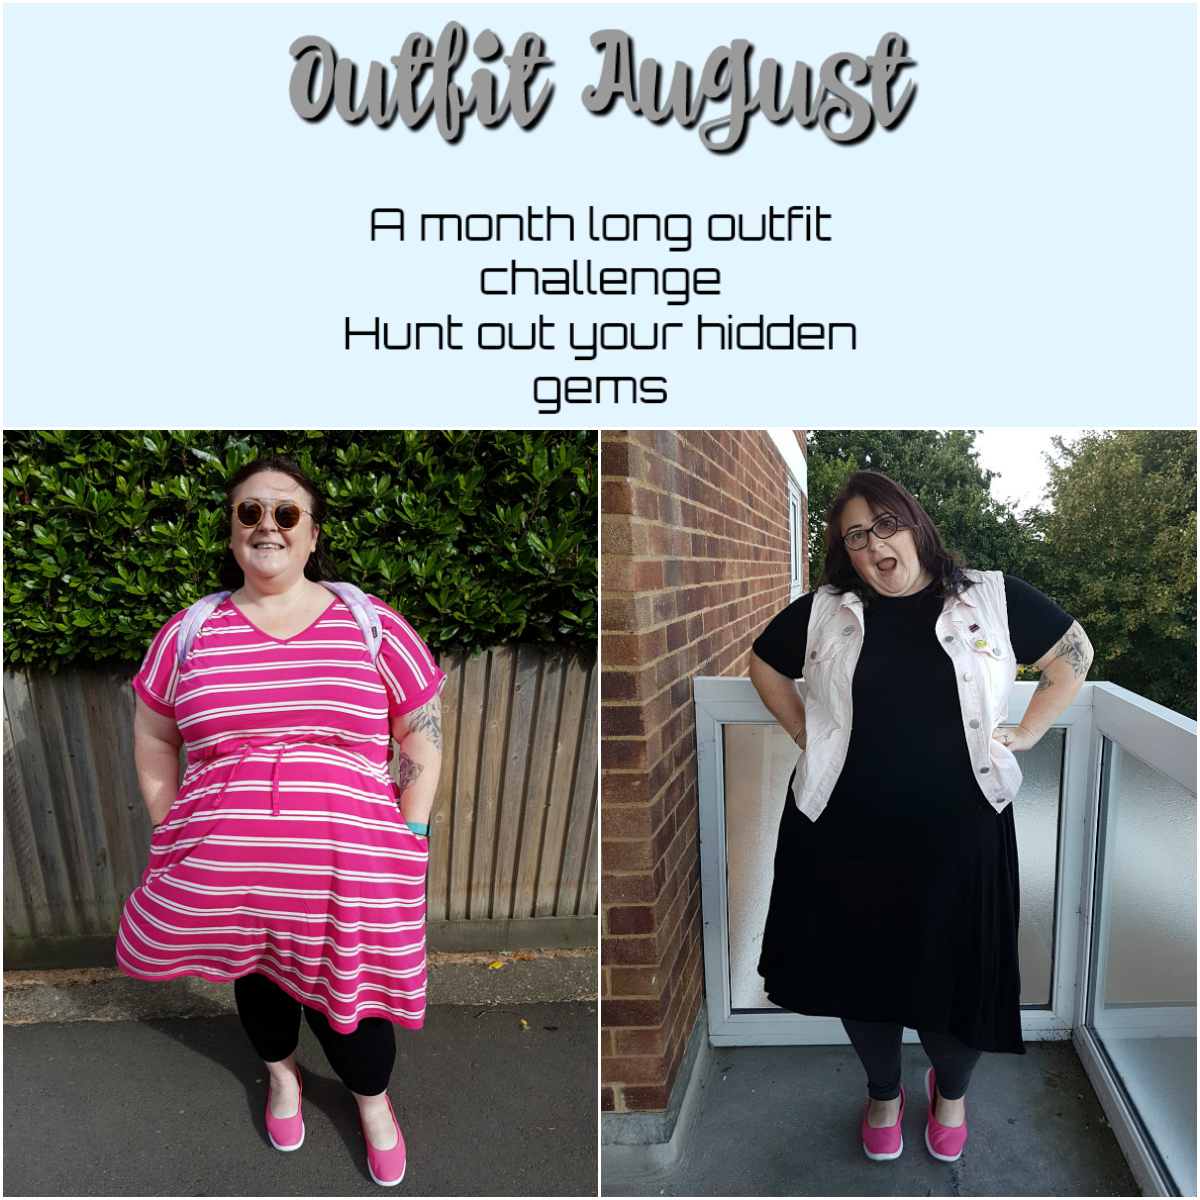 OUTFIT-AUGUST-OUTFIT-CHALLENGE // WWW.XLOVELEAHX.CO.UK